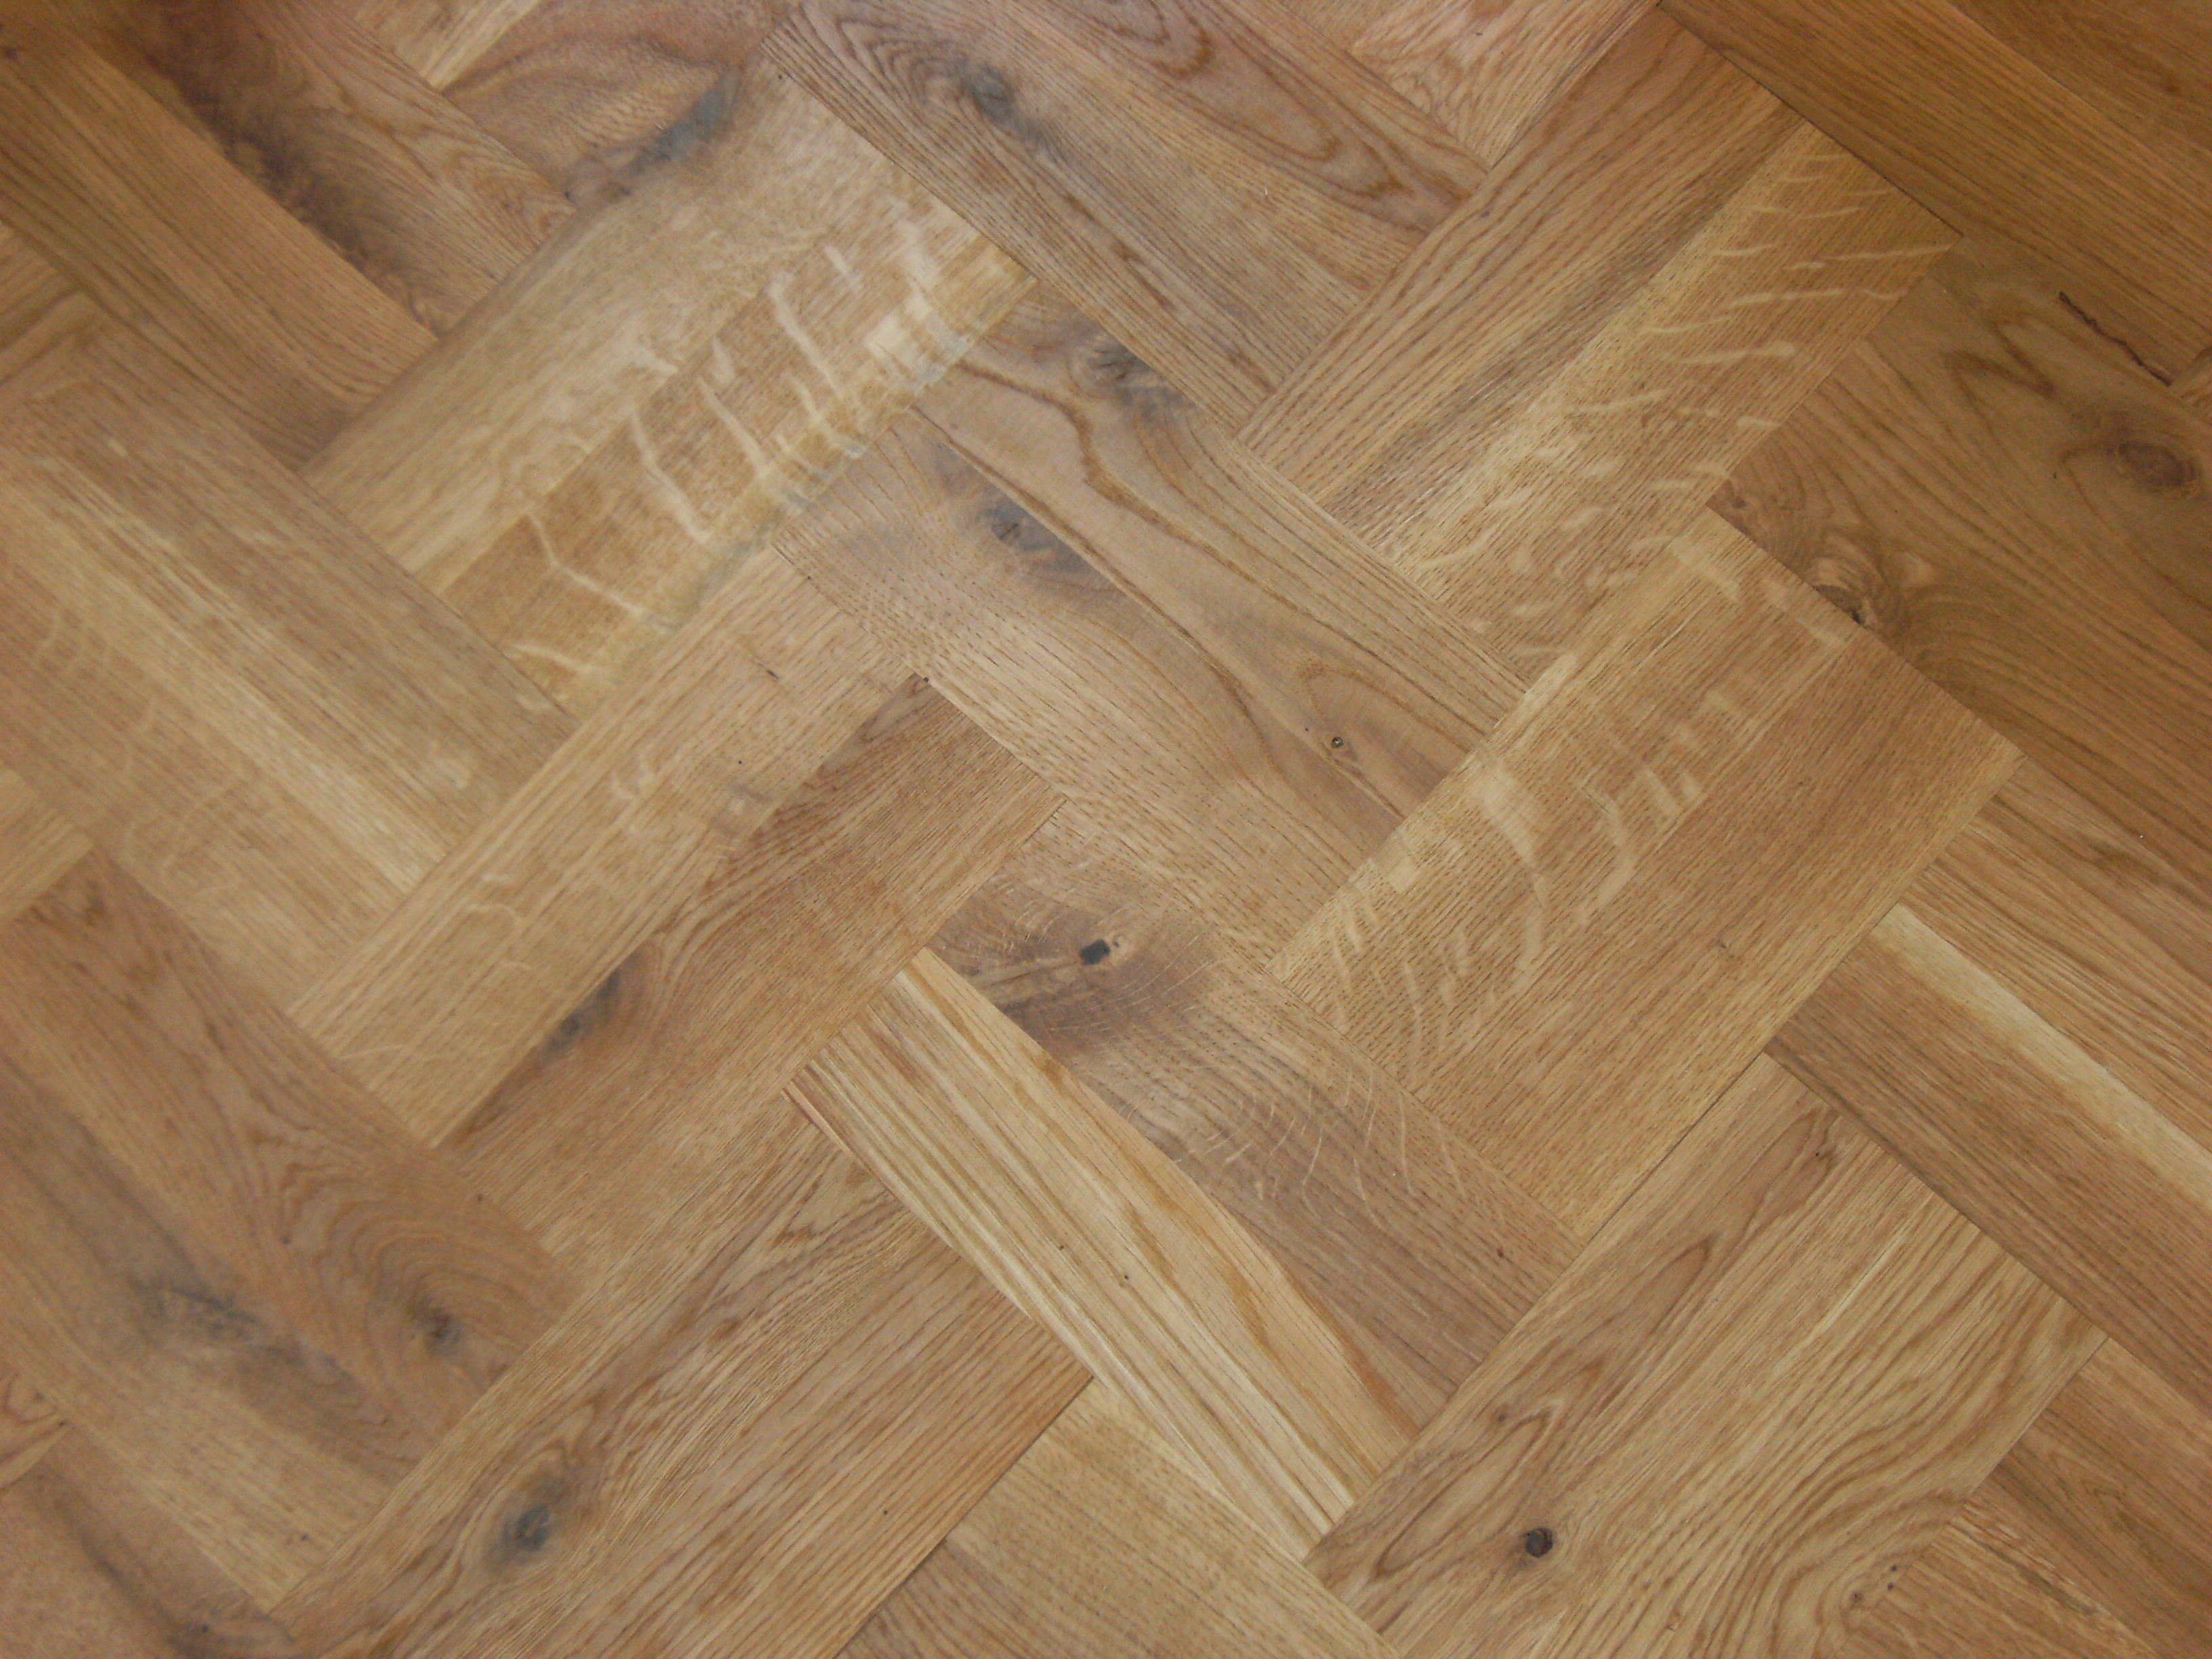 floor a karndean hall mawson keyline wood floors borders border with